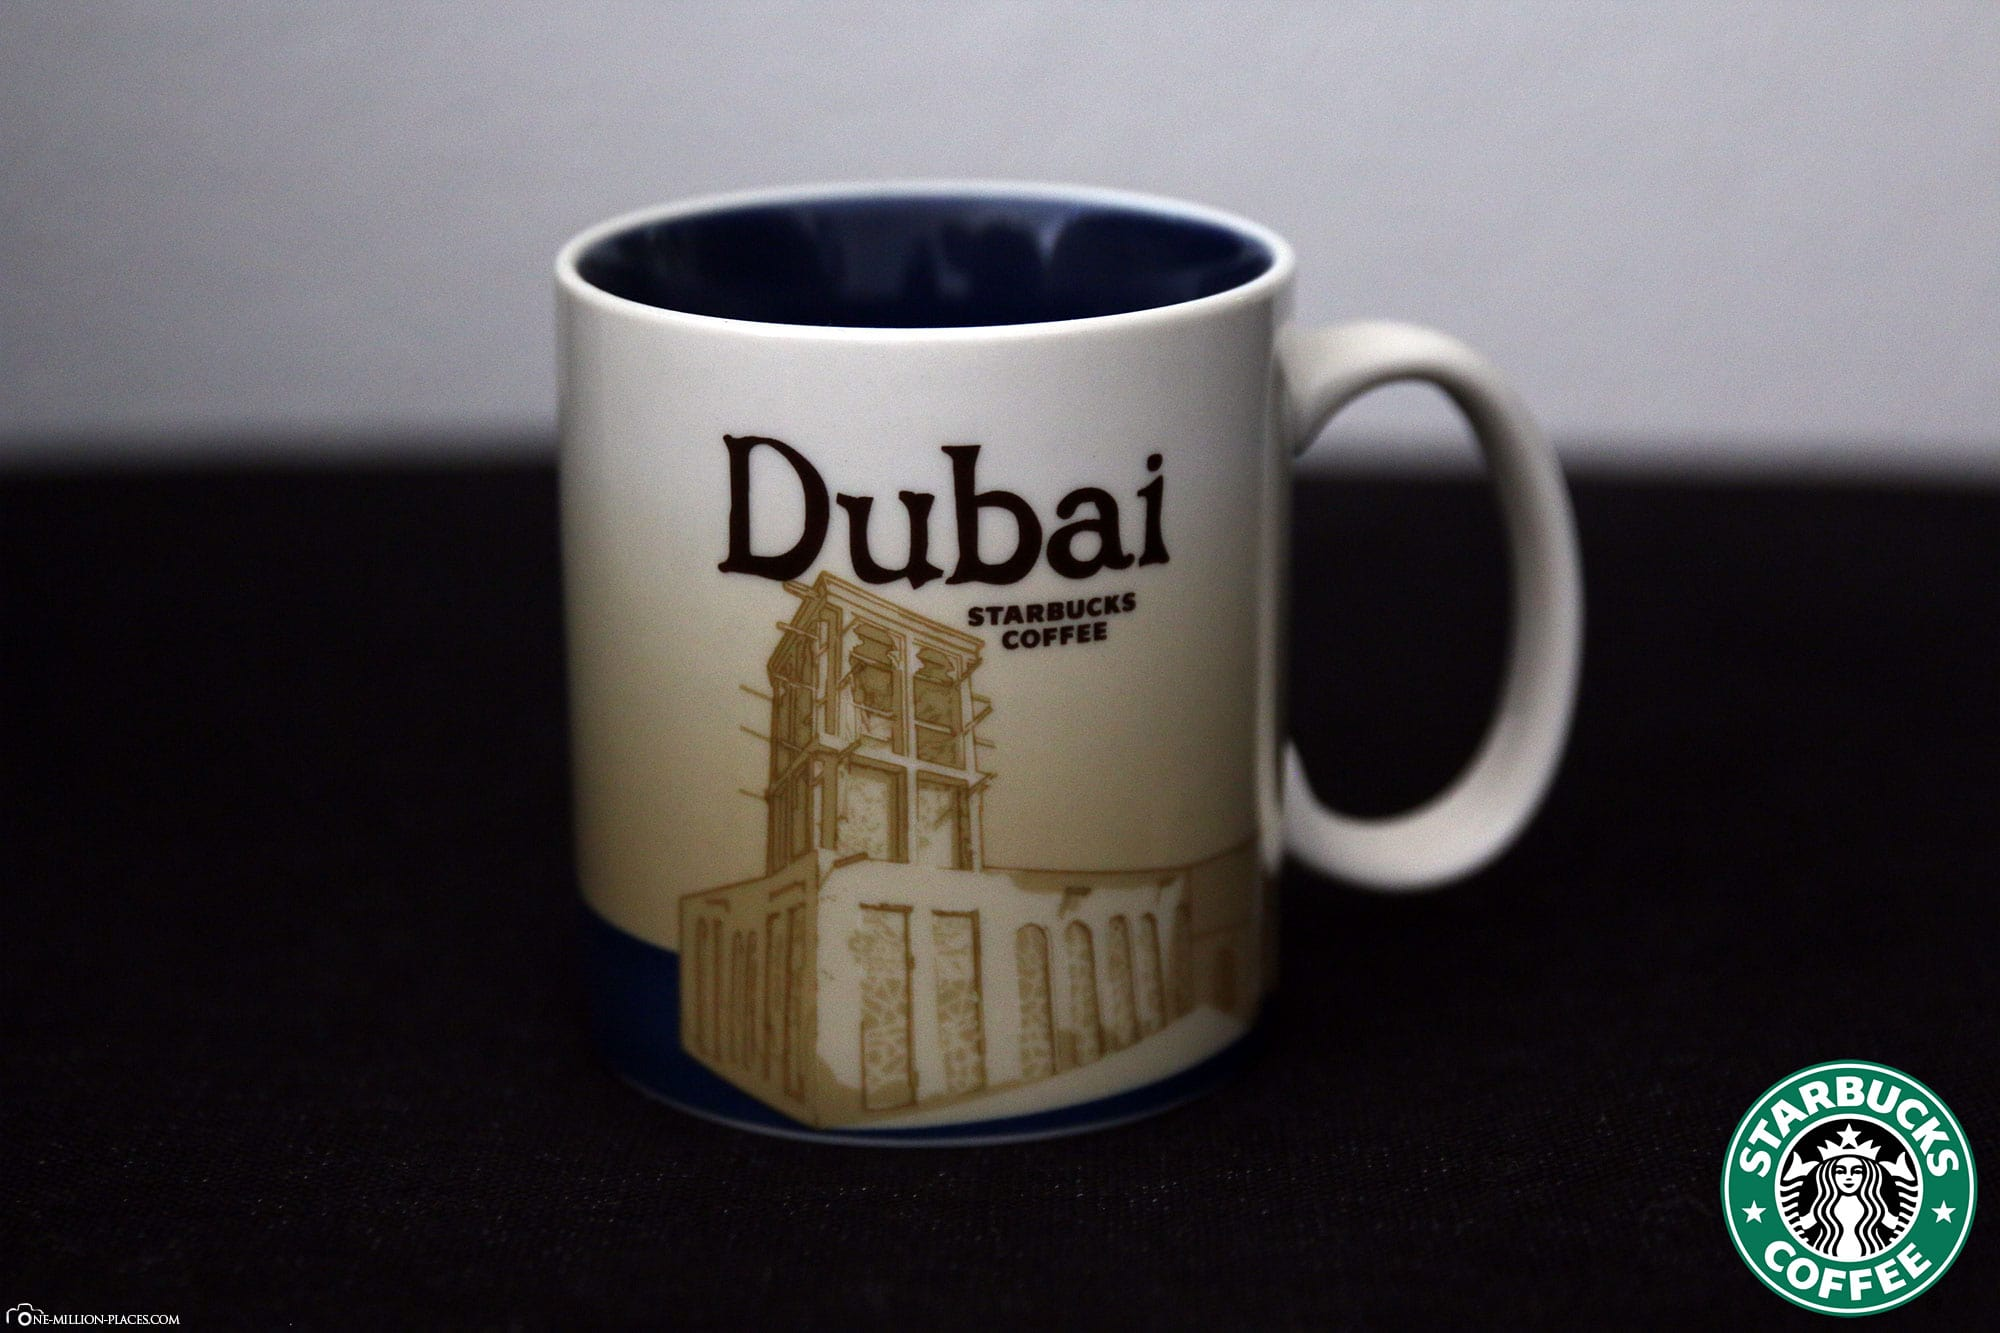 Dubai, Starbucks Cup, Global Icon Series, City Mugs, Collection, United Arab Emirates, TravelReport